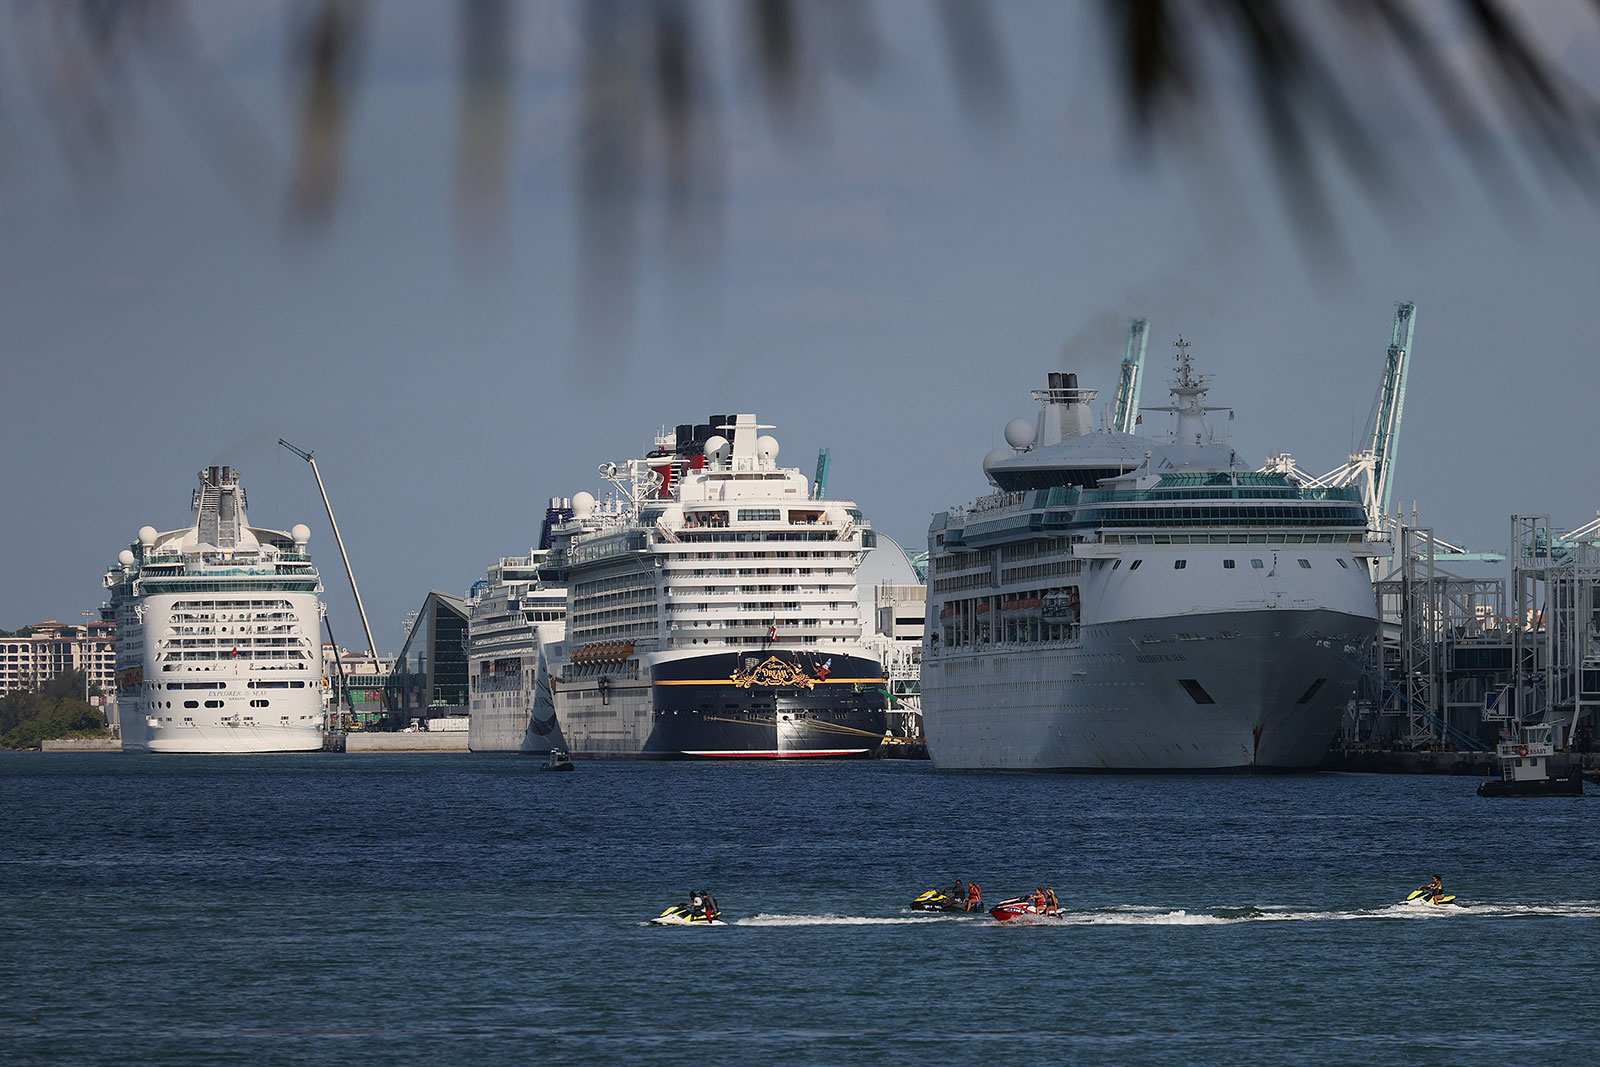 Cruise ships dock at PortMiami in Miami, Florida, on May 26.